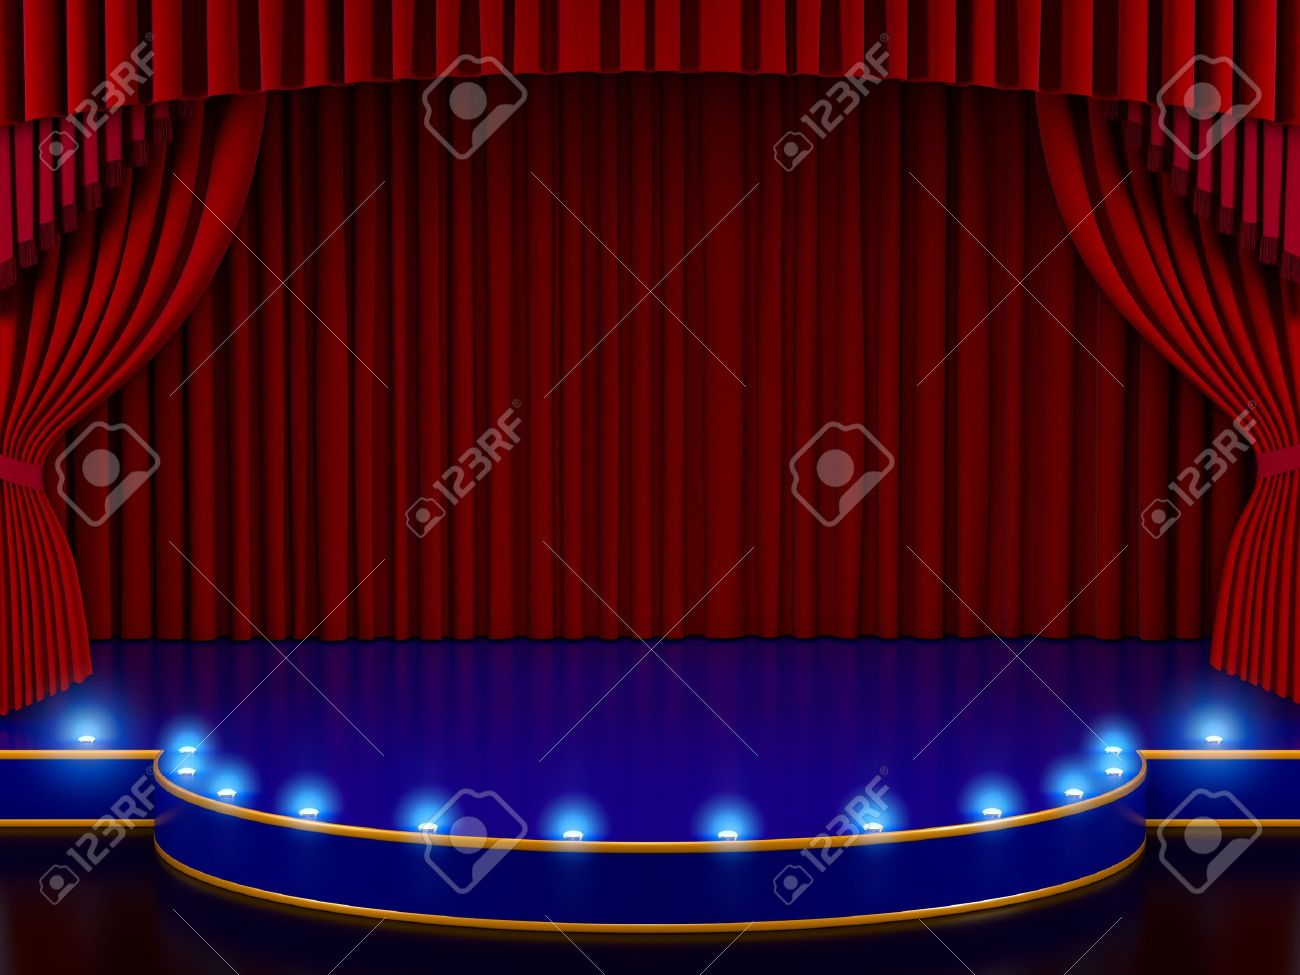 Red stage curtain with lights - Empty Stage With Red Curtain 3d Render Stock Photo 9959888